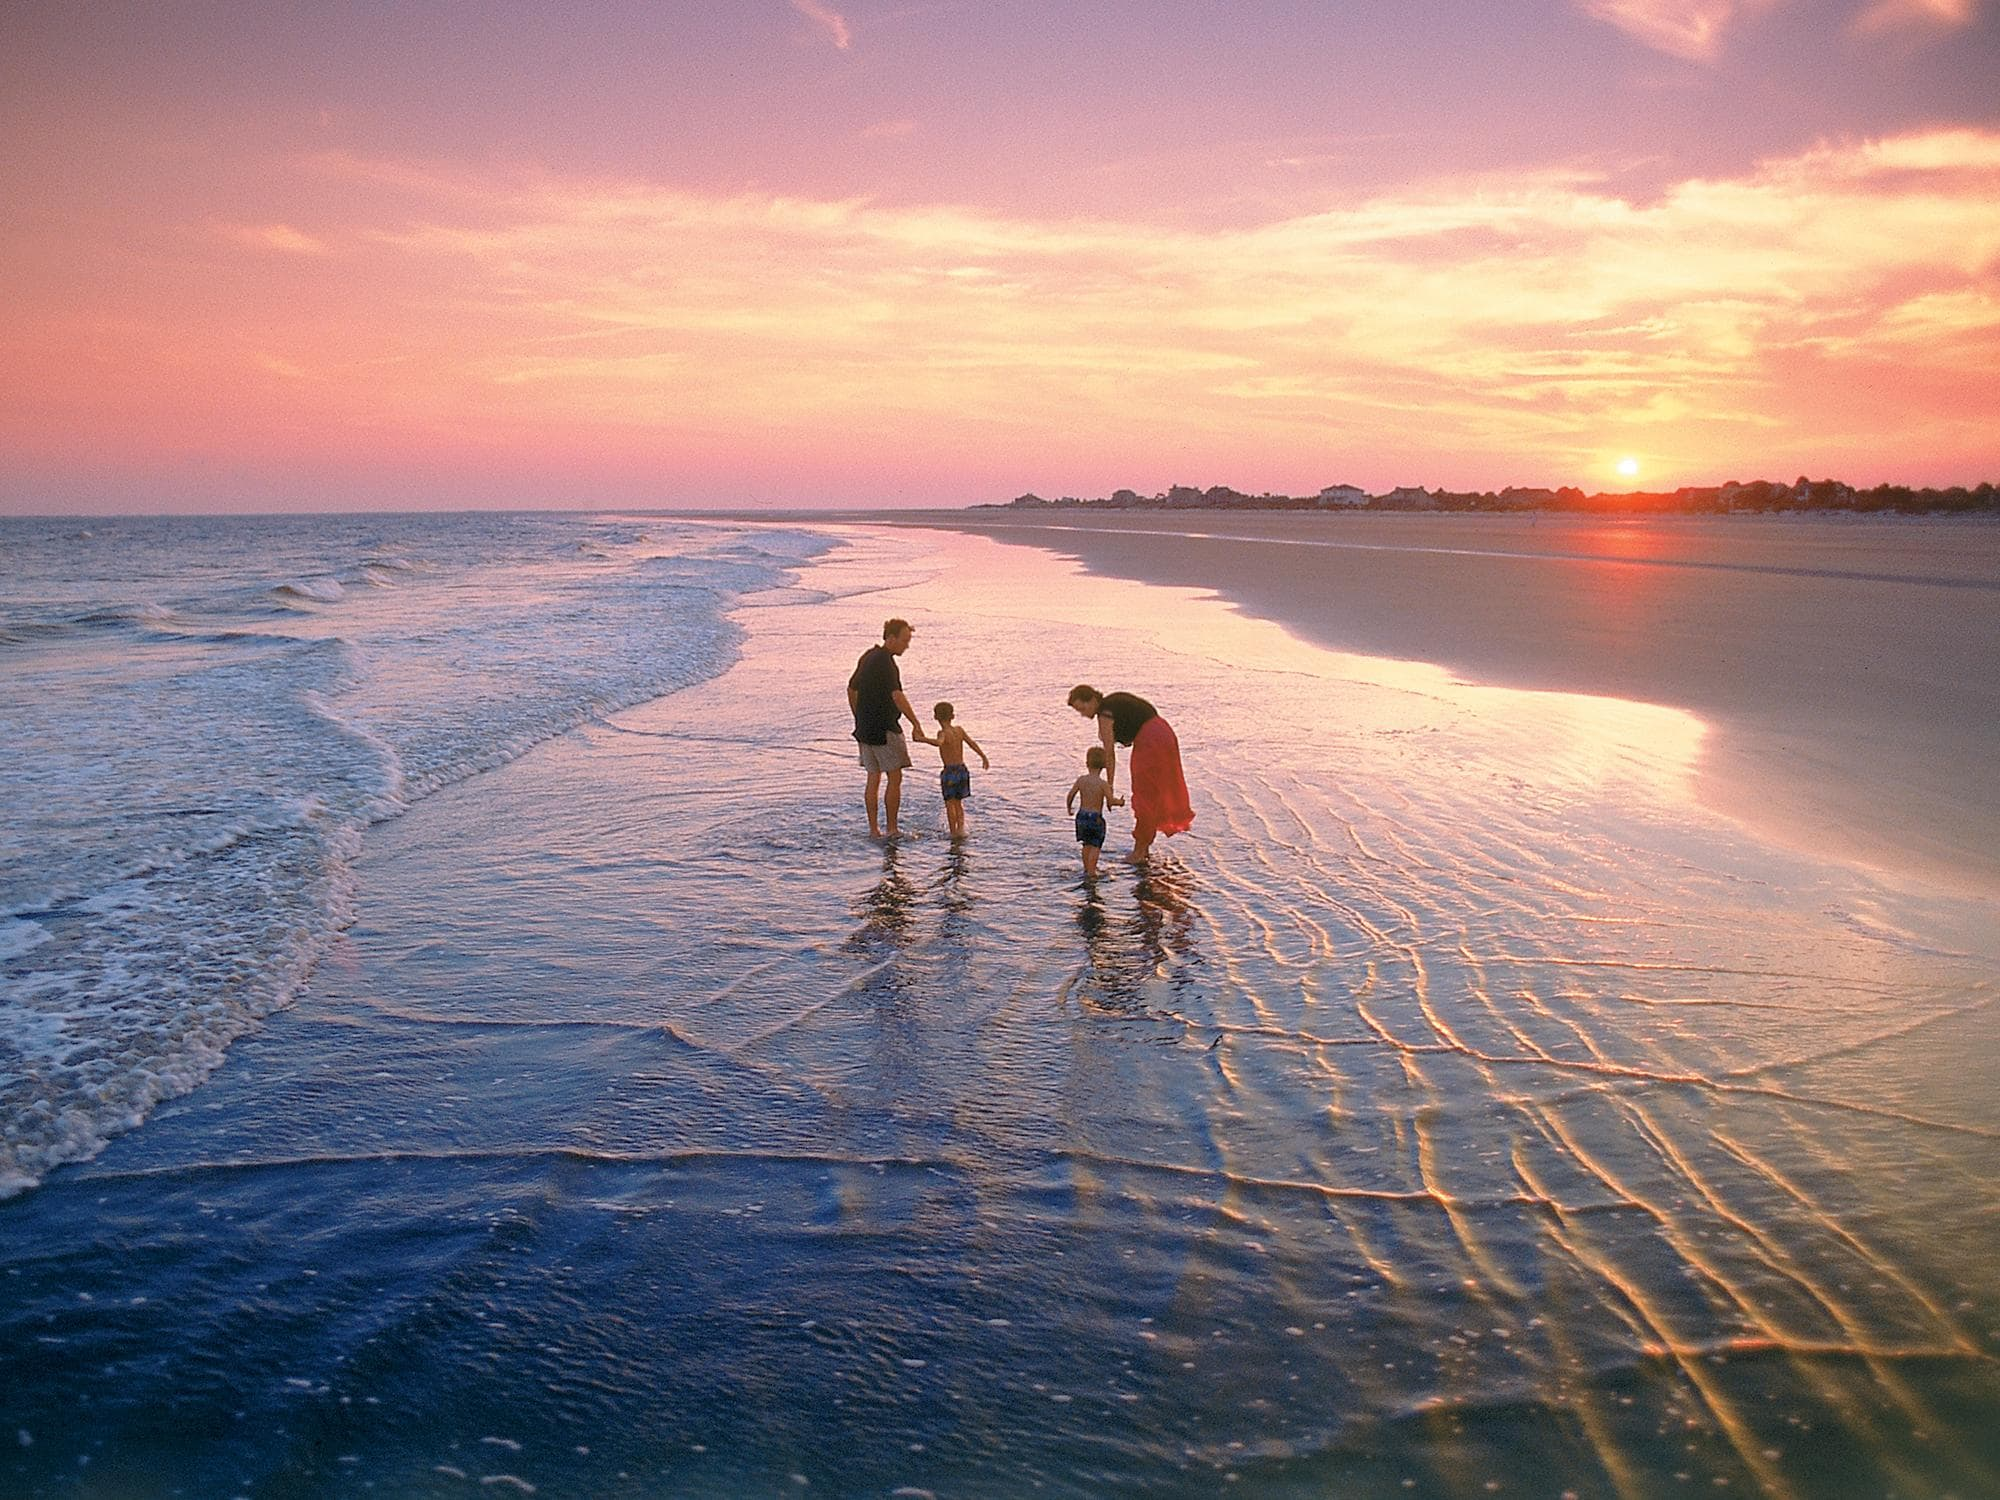 Walk along nearby pristine beaches and take in beautiful sunset views.